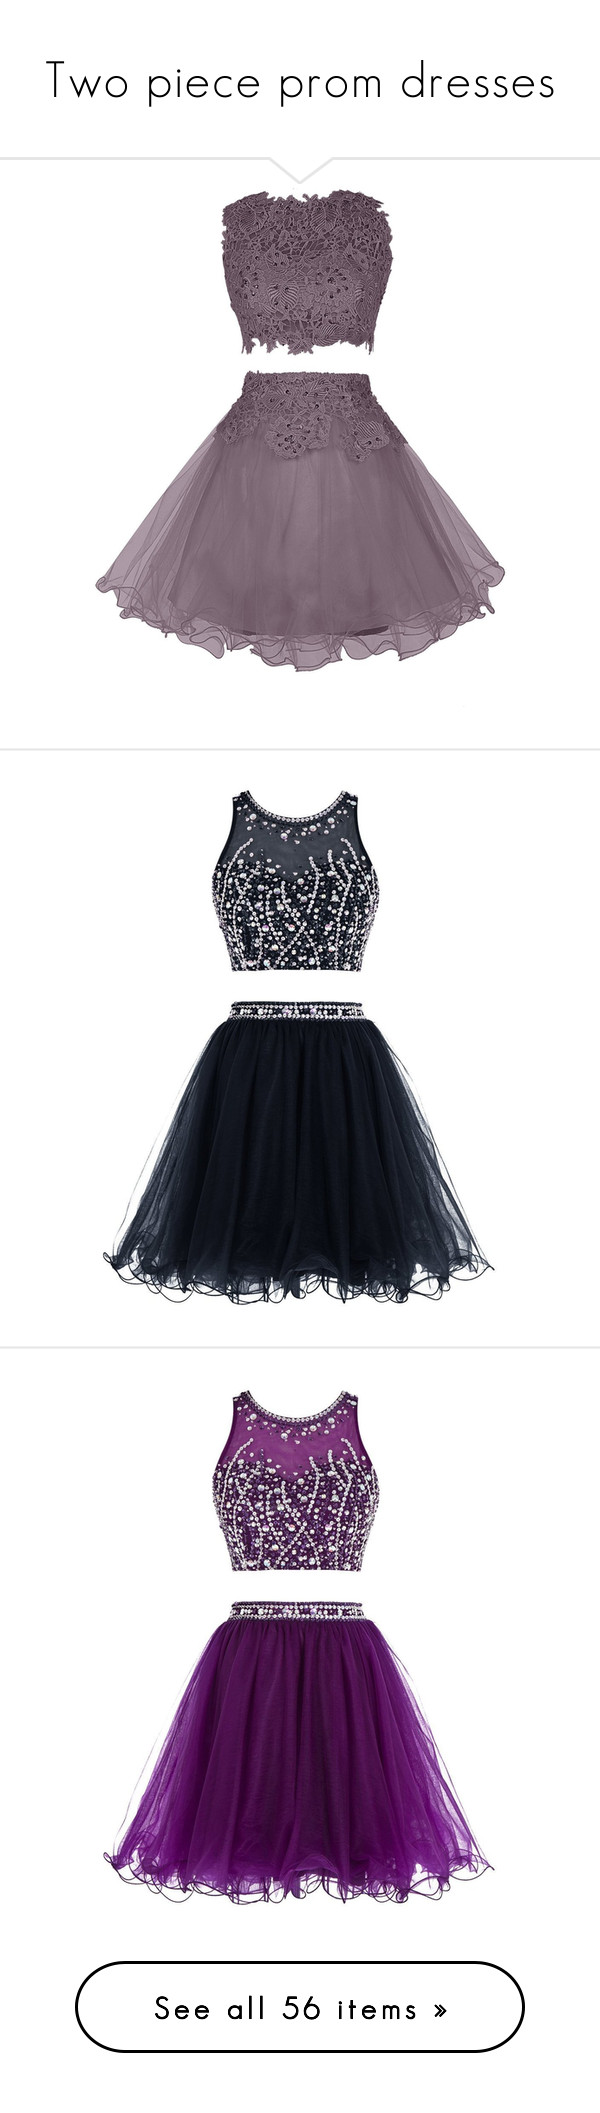 Two Piece Prom Dresses By Oxwhatsernamexo Liked On Polyvore Featuring Dresses Outfits Pr Tulle Dress Short Short Cocktail Prom Dresses Purple Short Dress [ 2113 x 600 Pixel ]